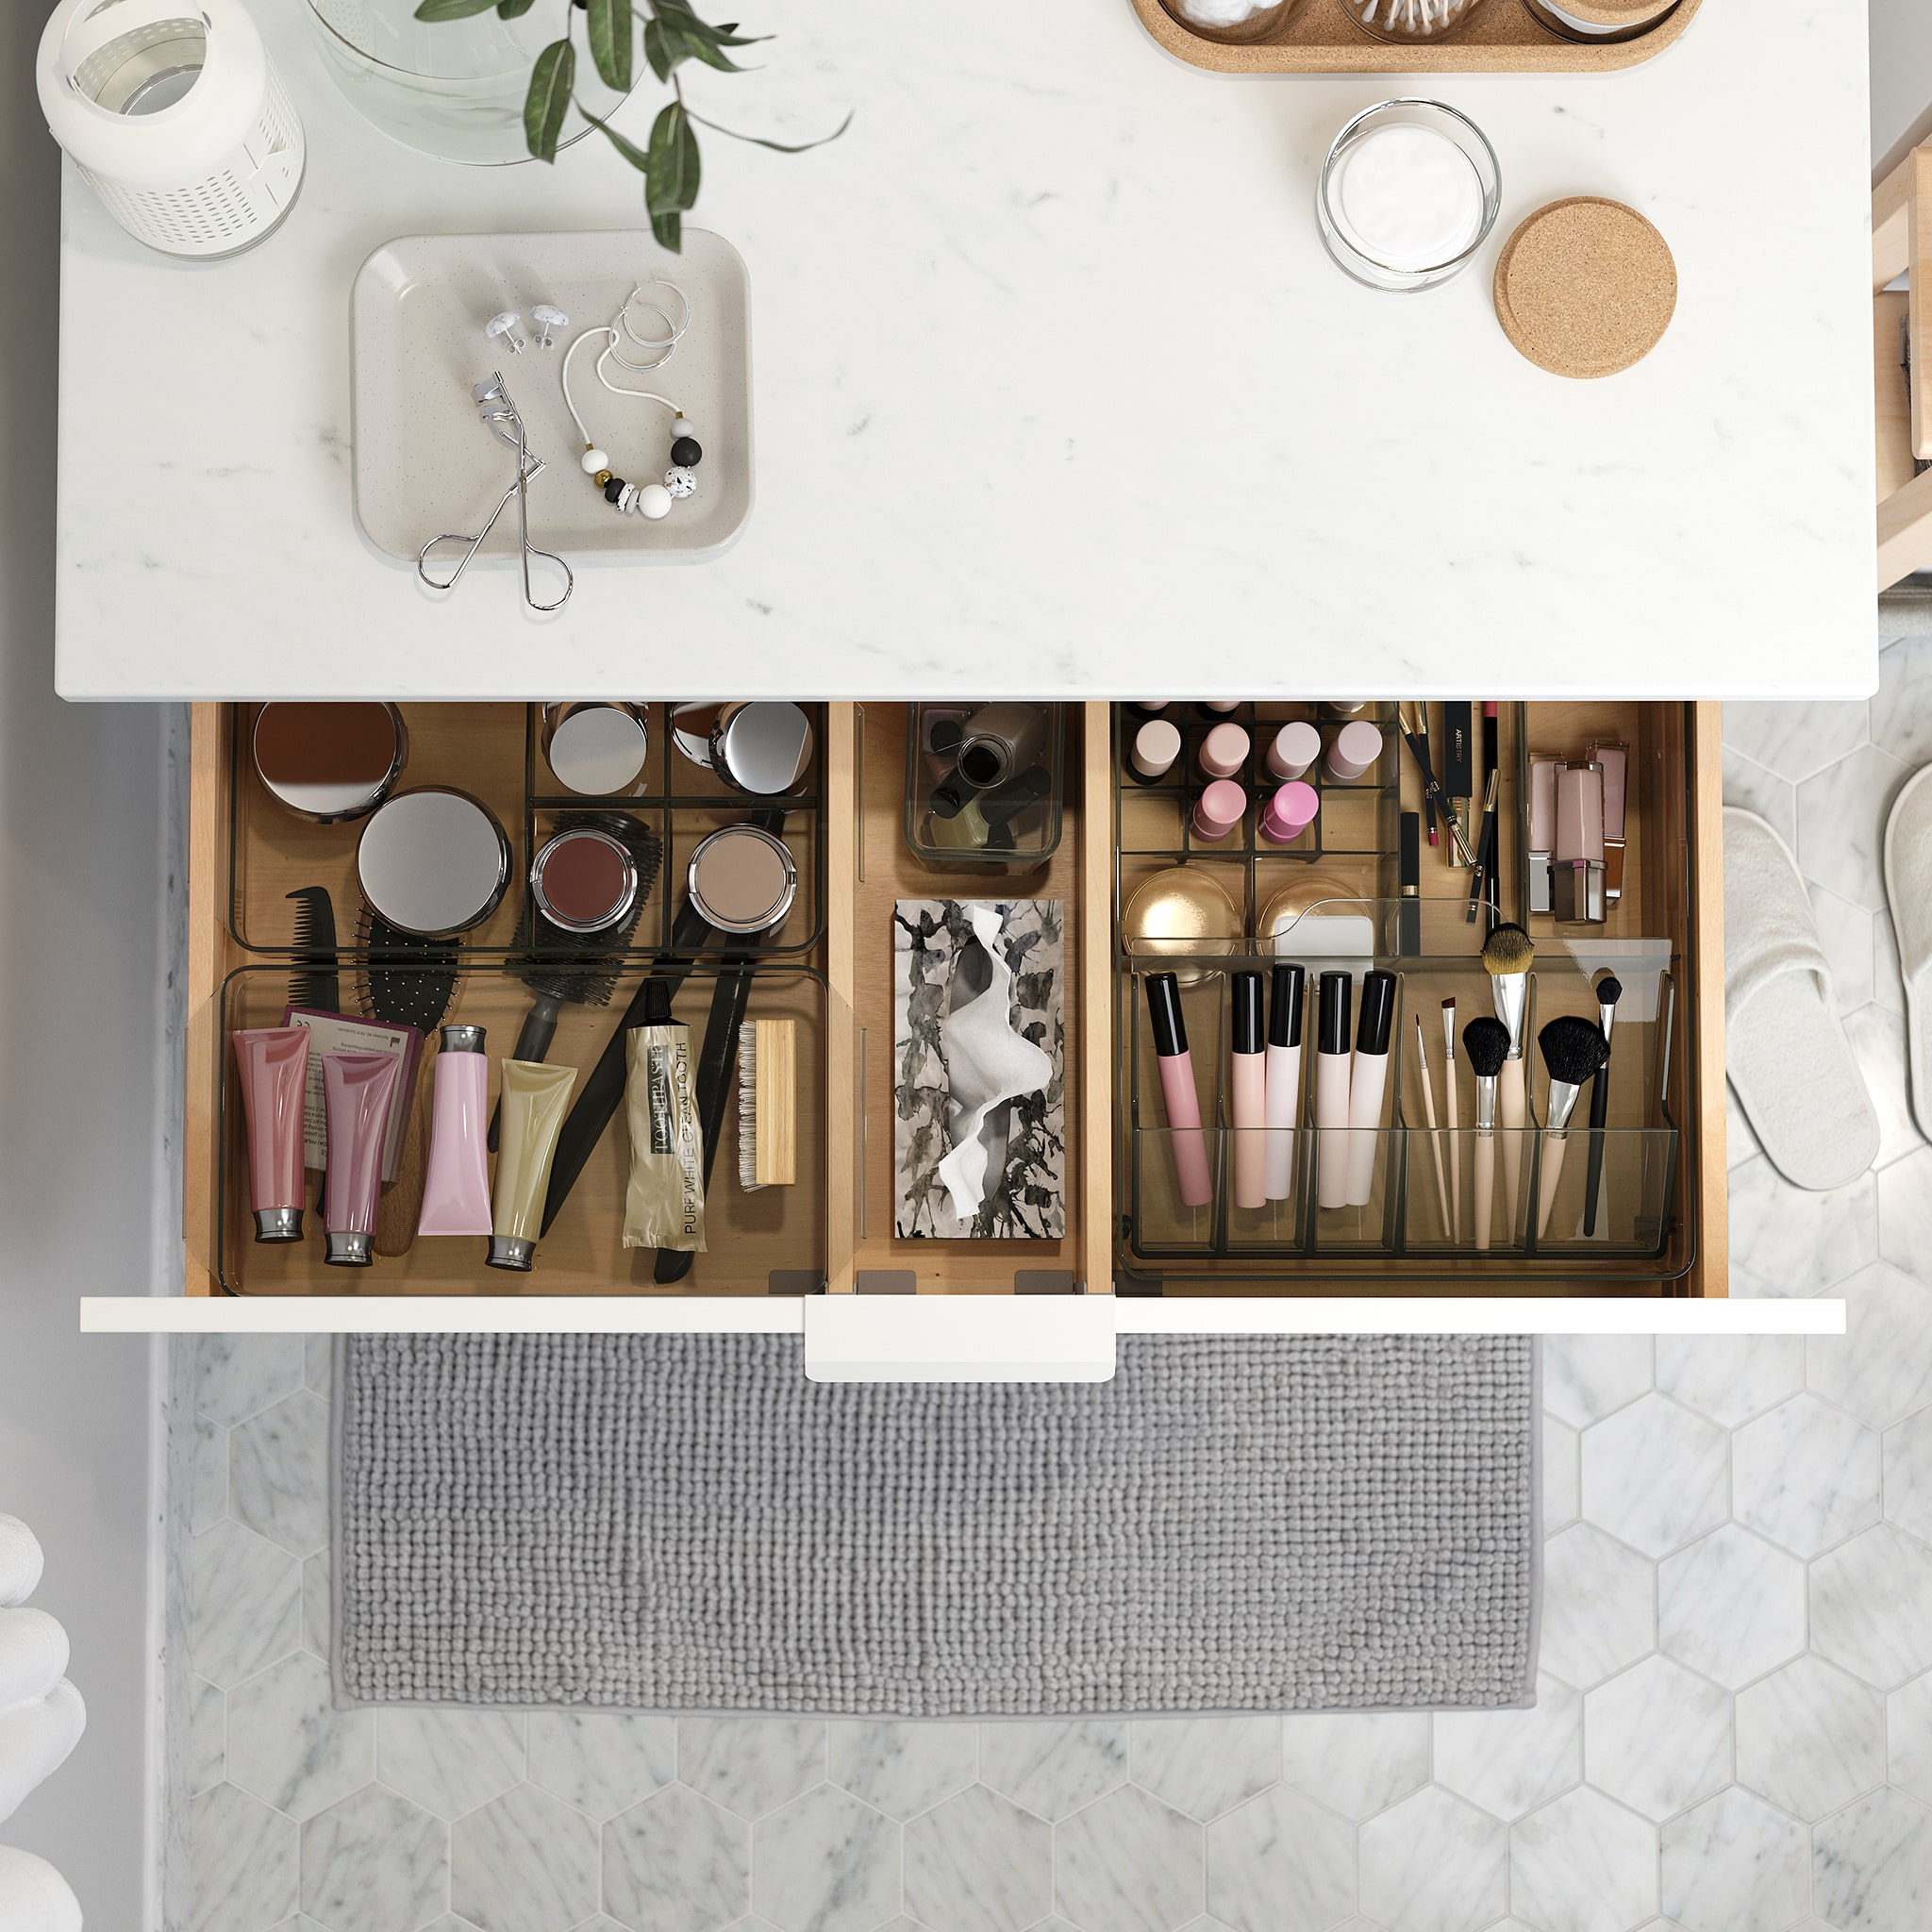 A wash-stand with a countertop in a marble effect. A drawer is open and inside are GODMORGON boxes that help organise makeup.